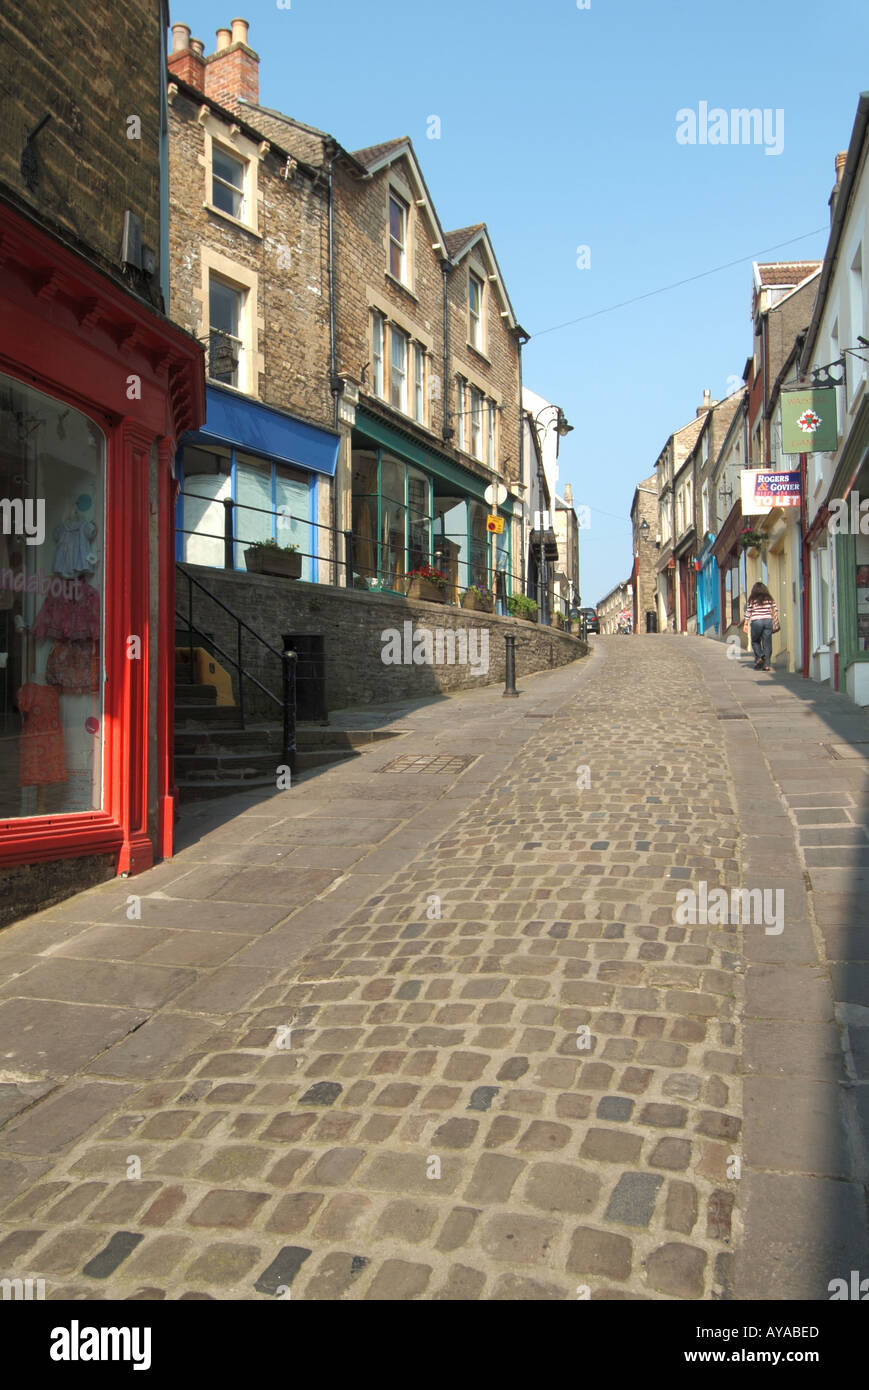 Frome a quaint narrow hilly side streets housing a selection of small shops and eating venues with dwellings above Stock Photo